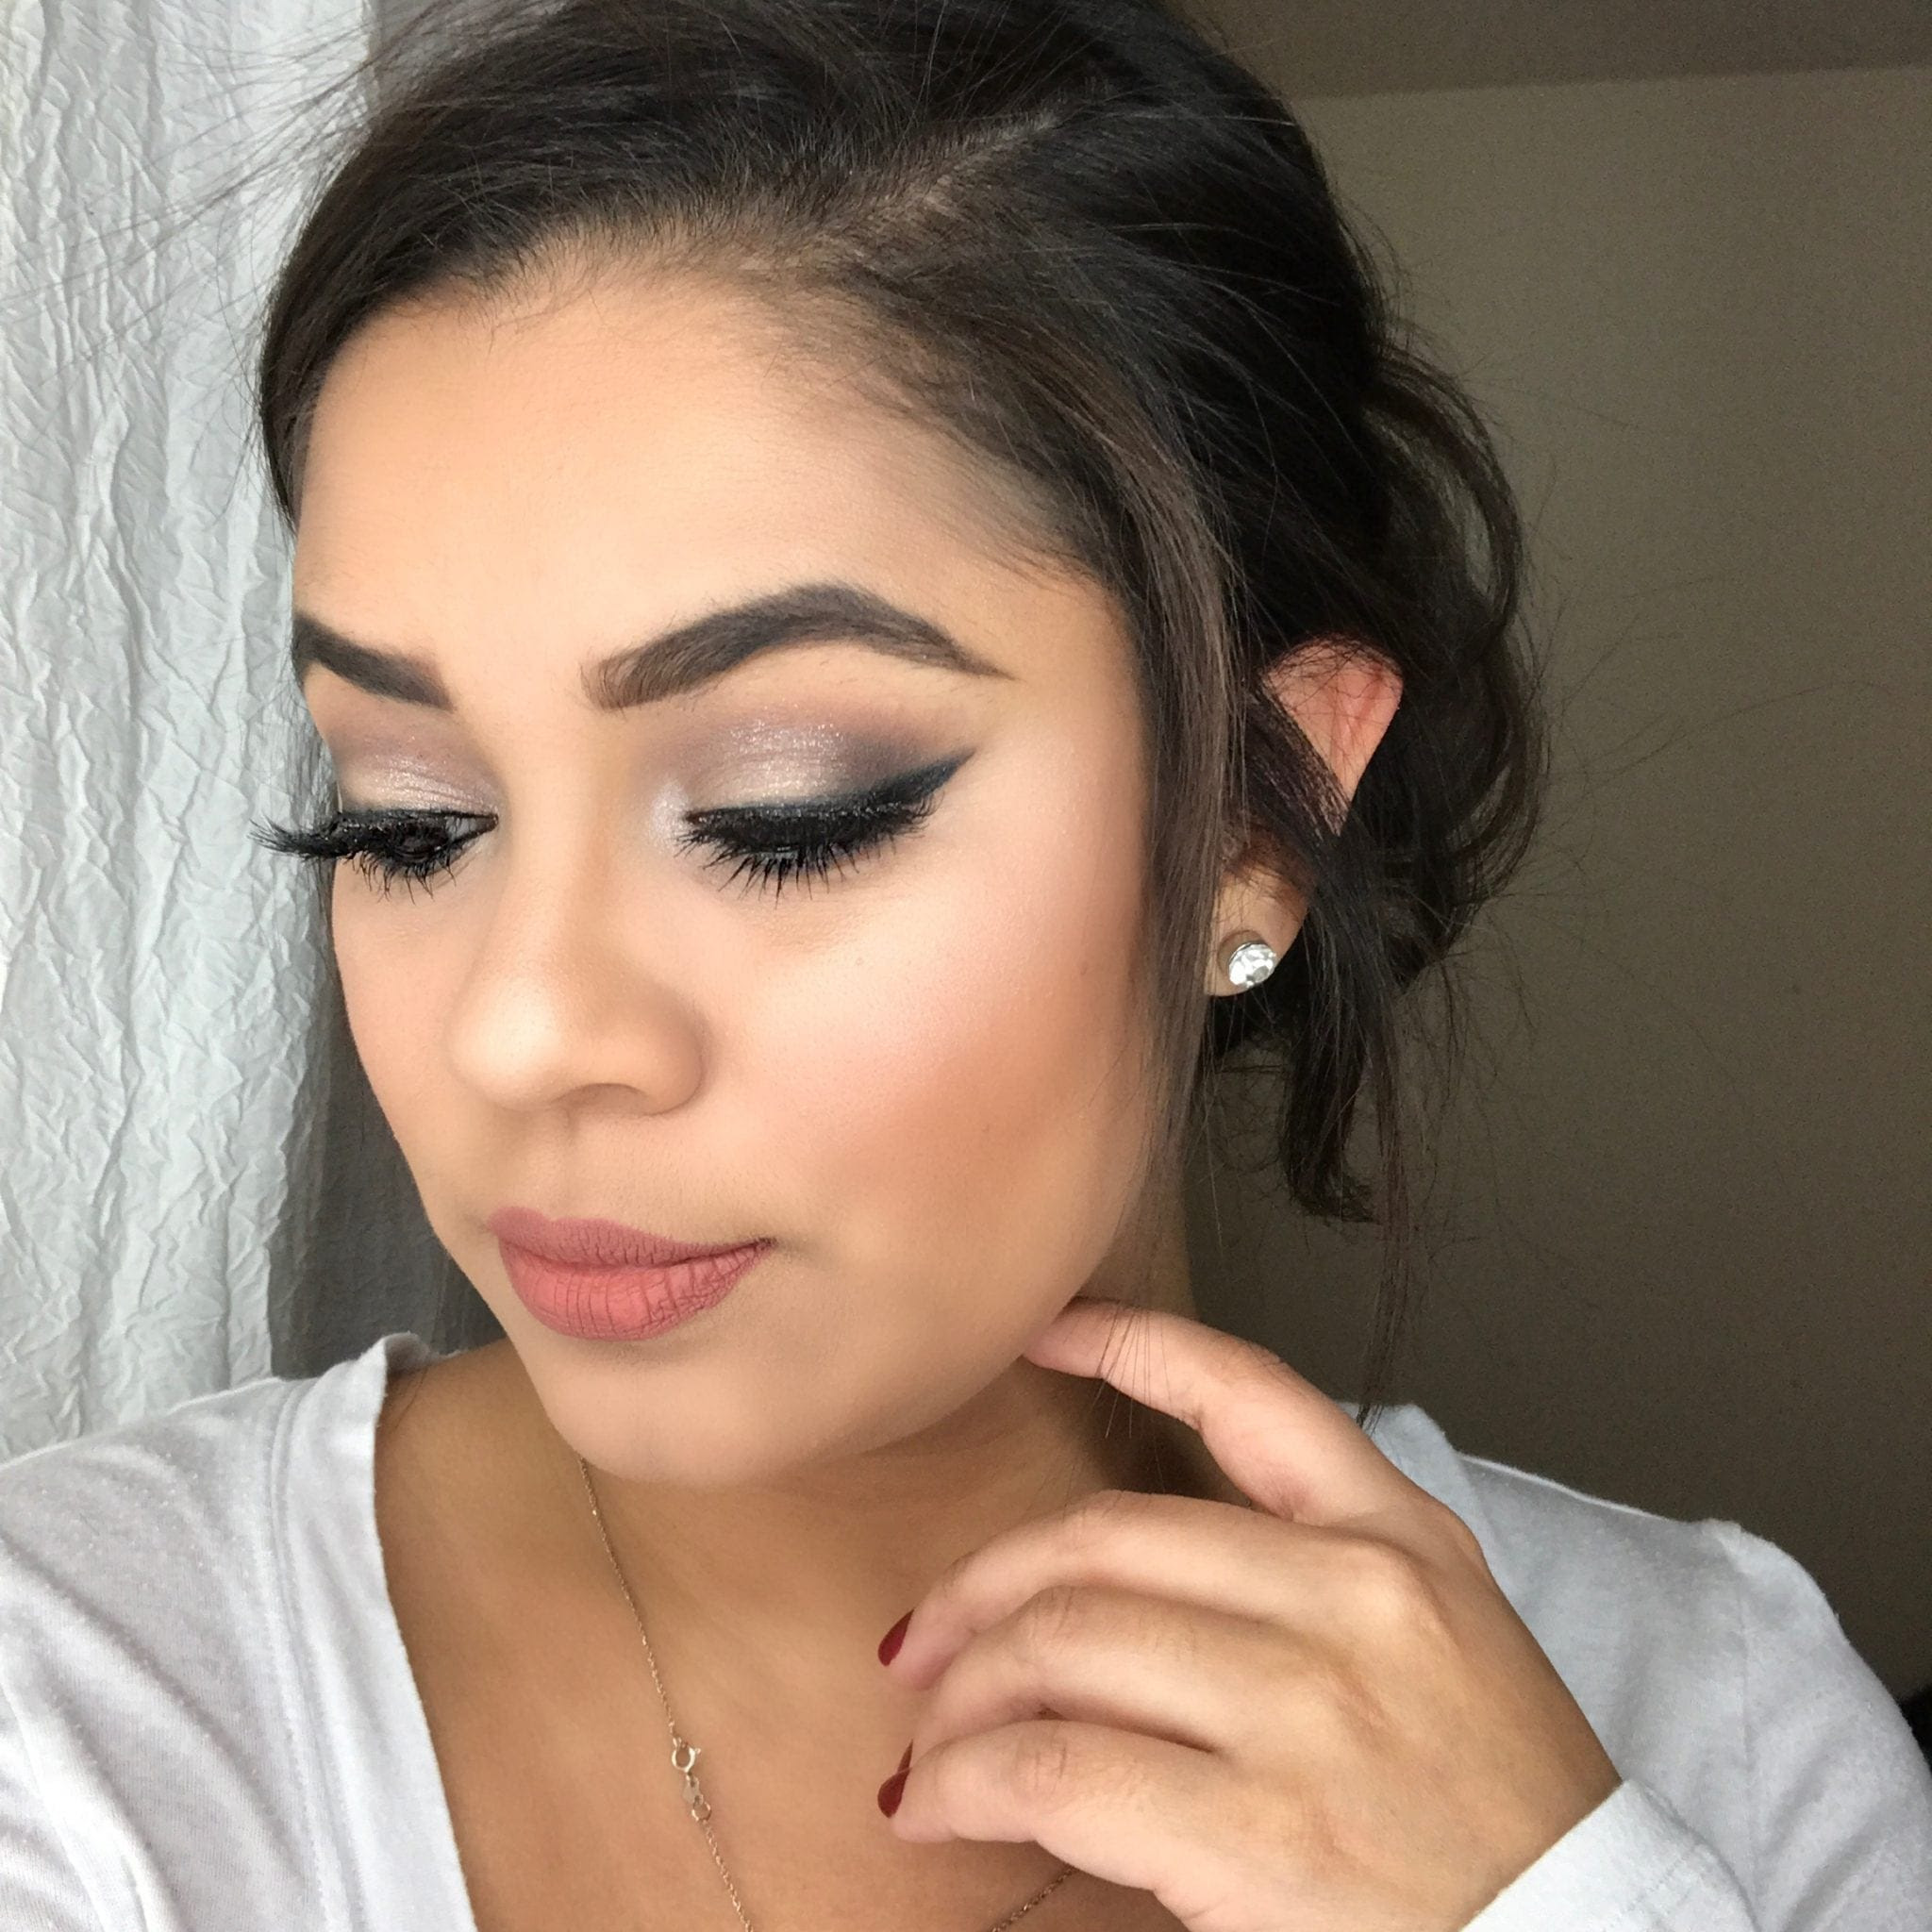 Makeup styles for wedding